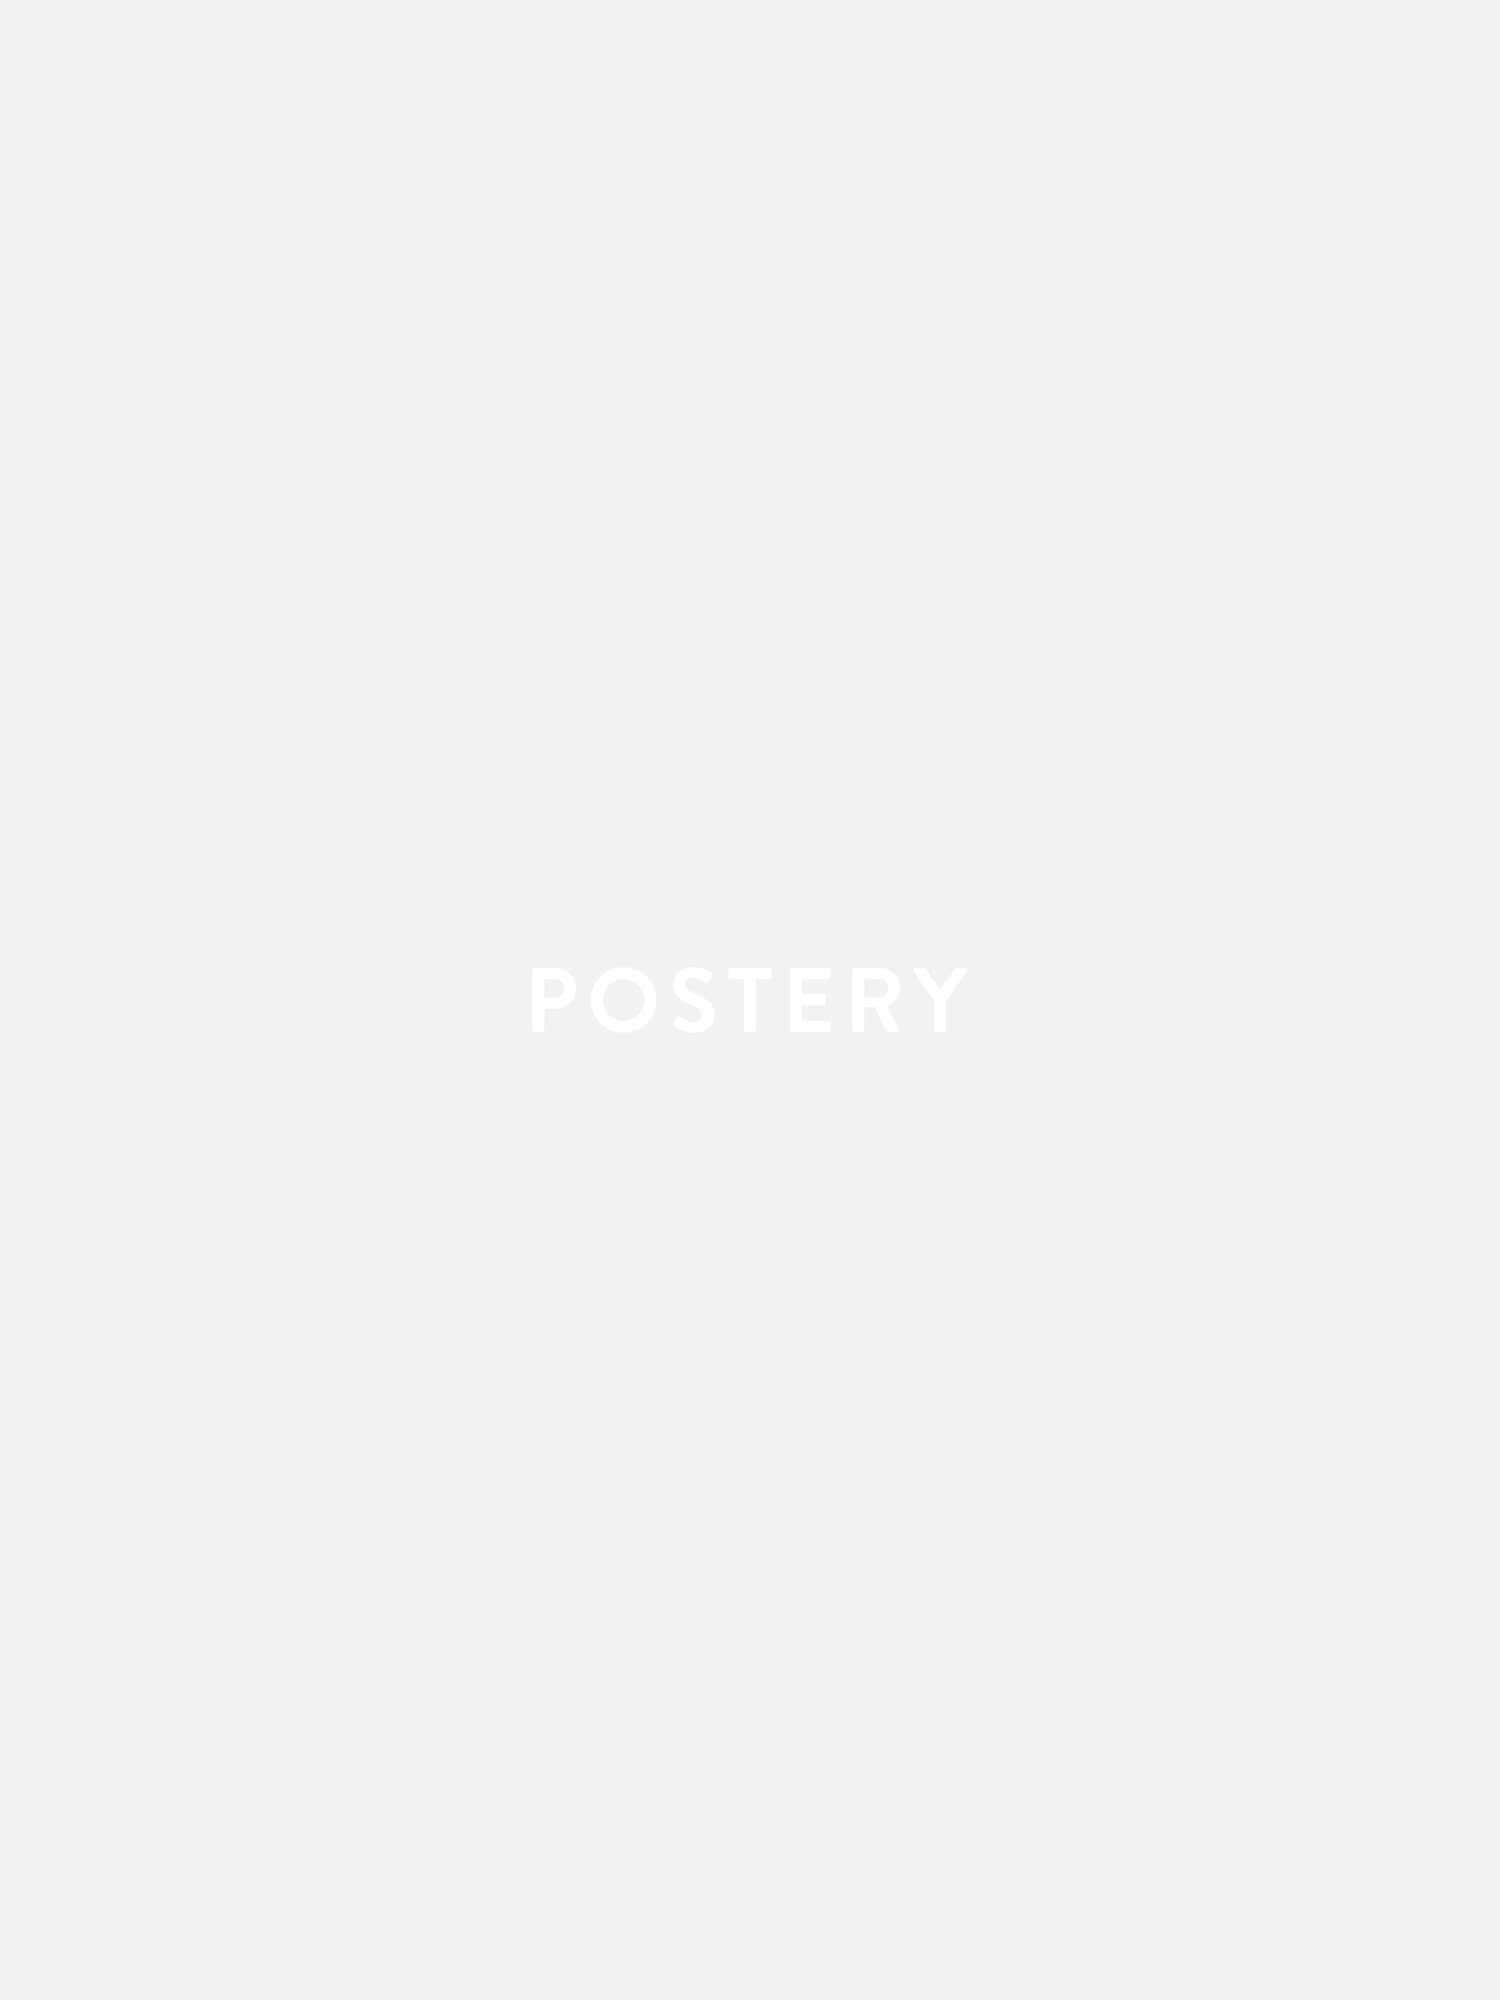 Bear Picking Stars Poster